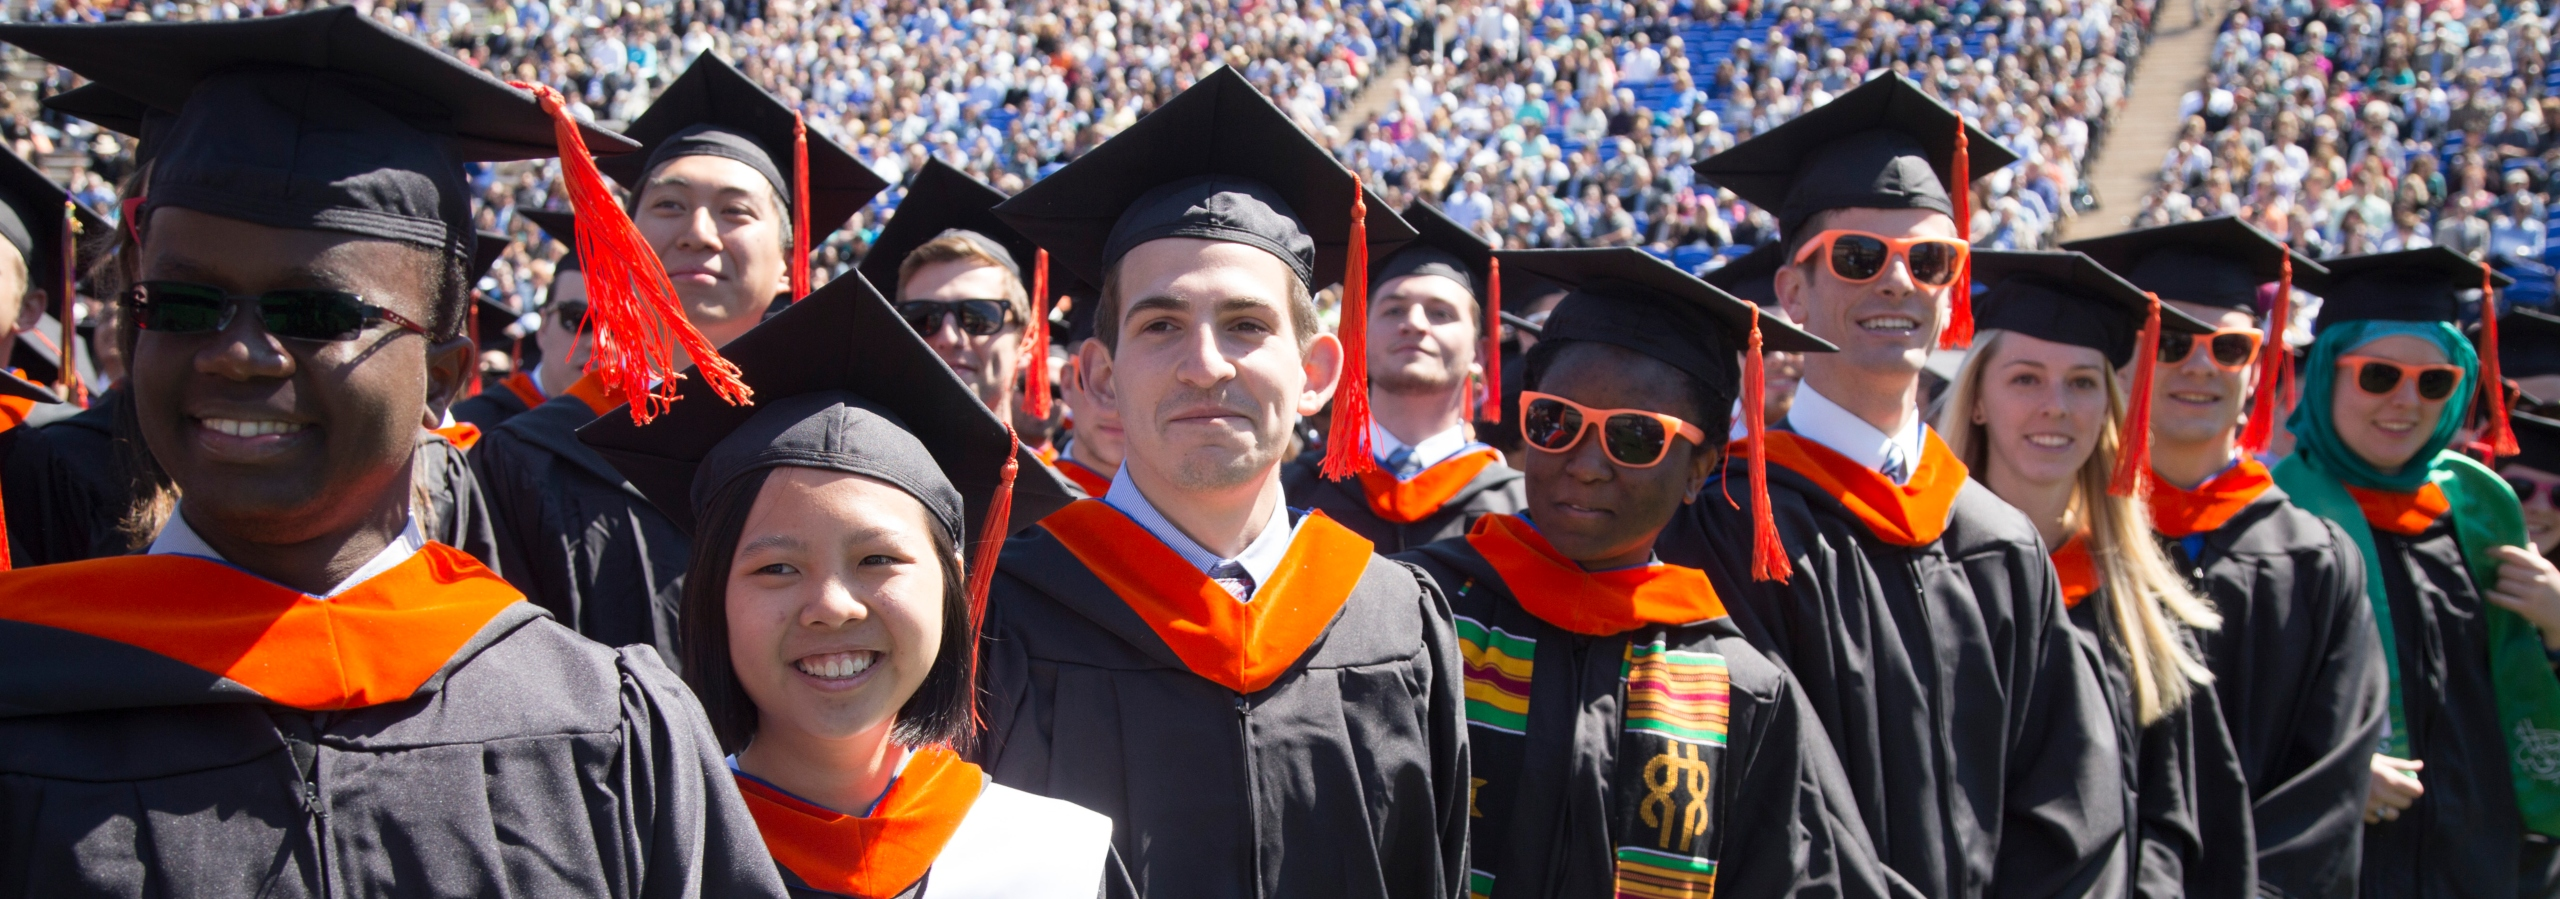 Duke Engineering graduates in caps and gowns